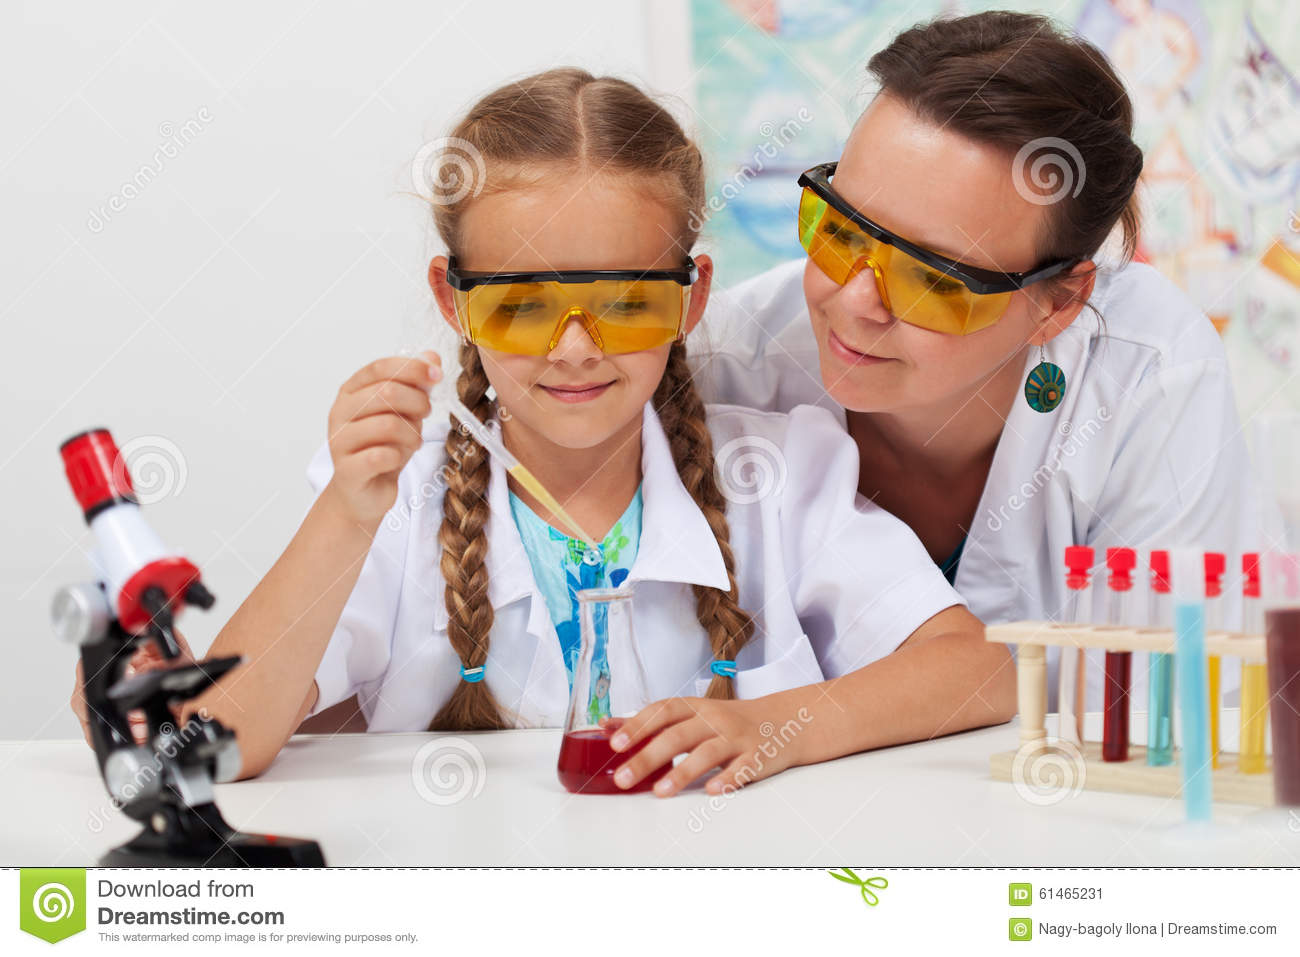 Elementary Education college science classes